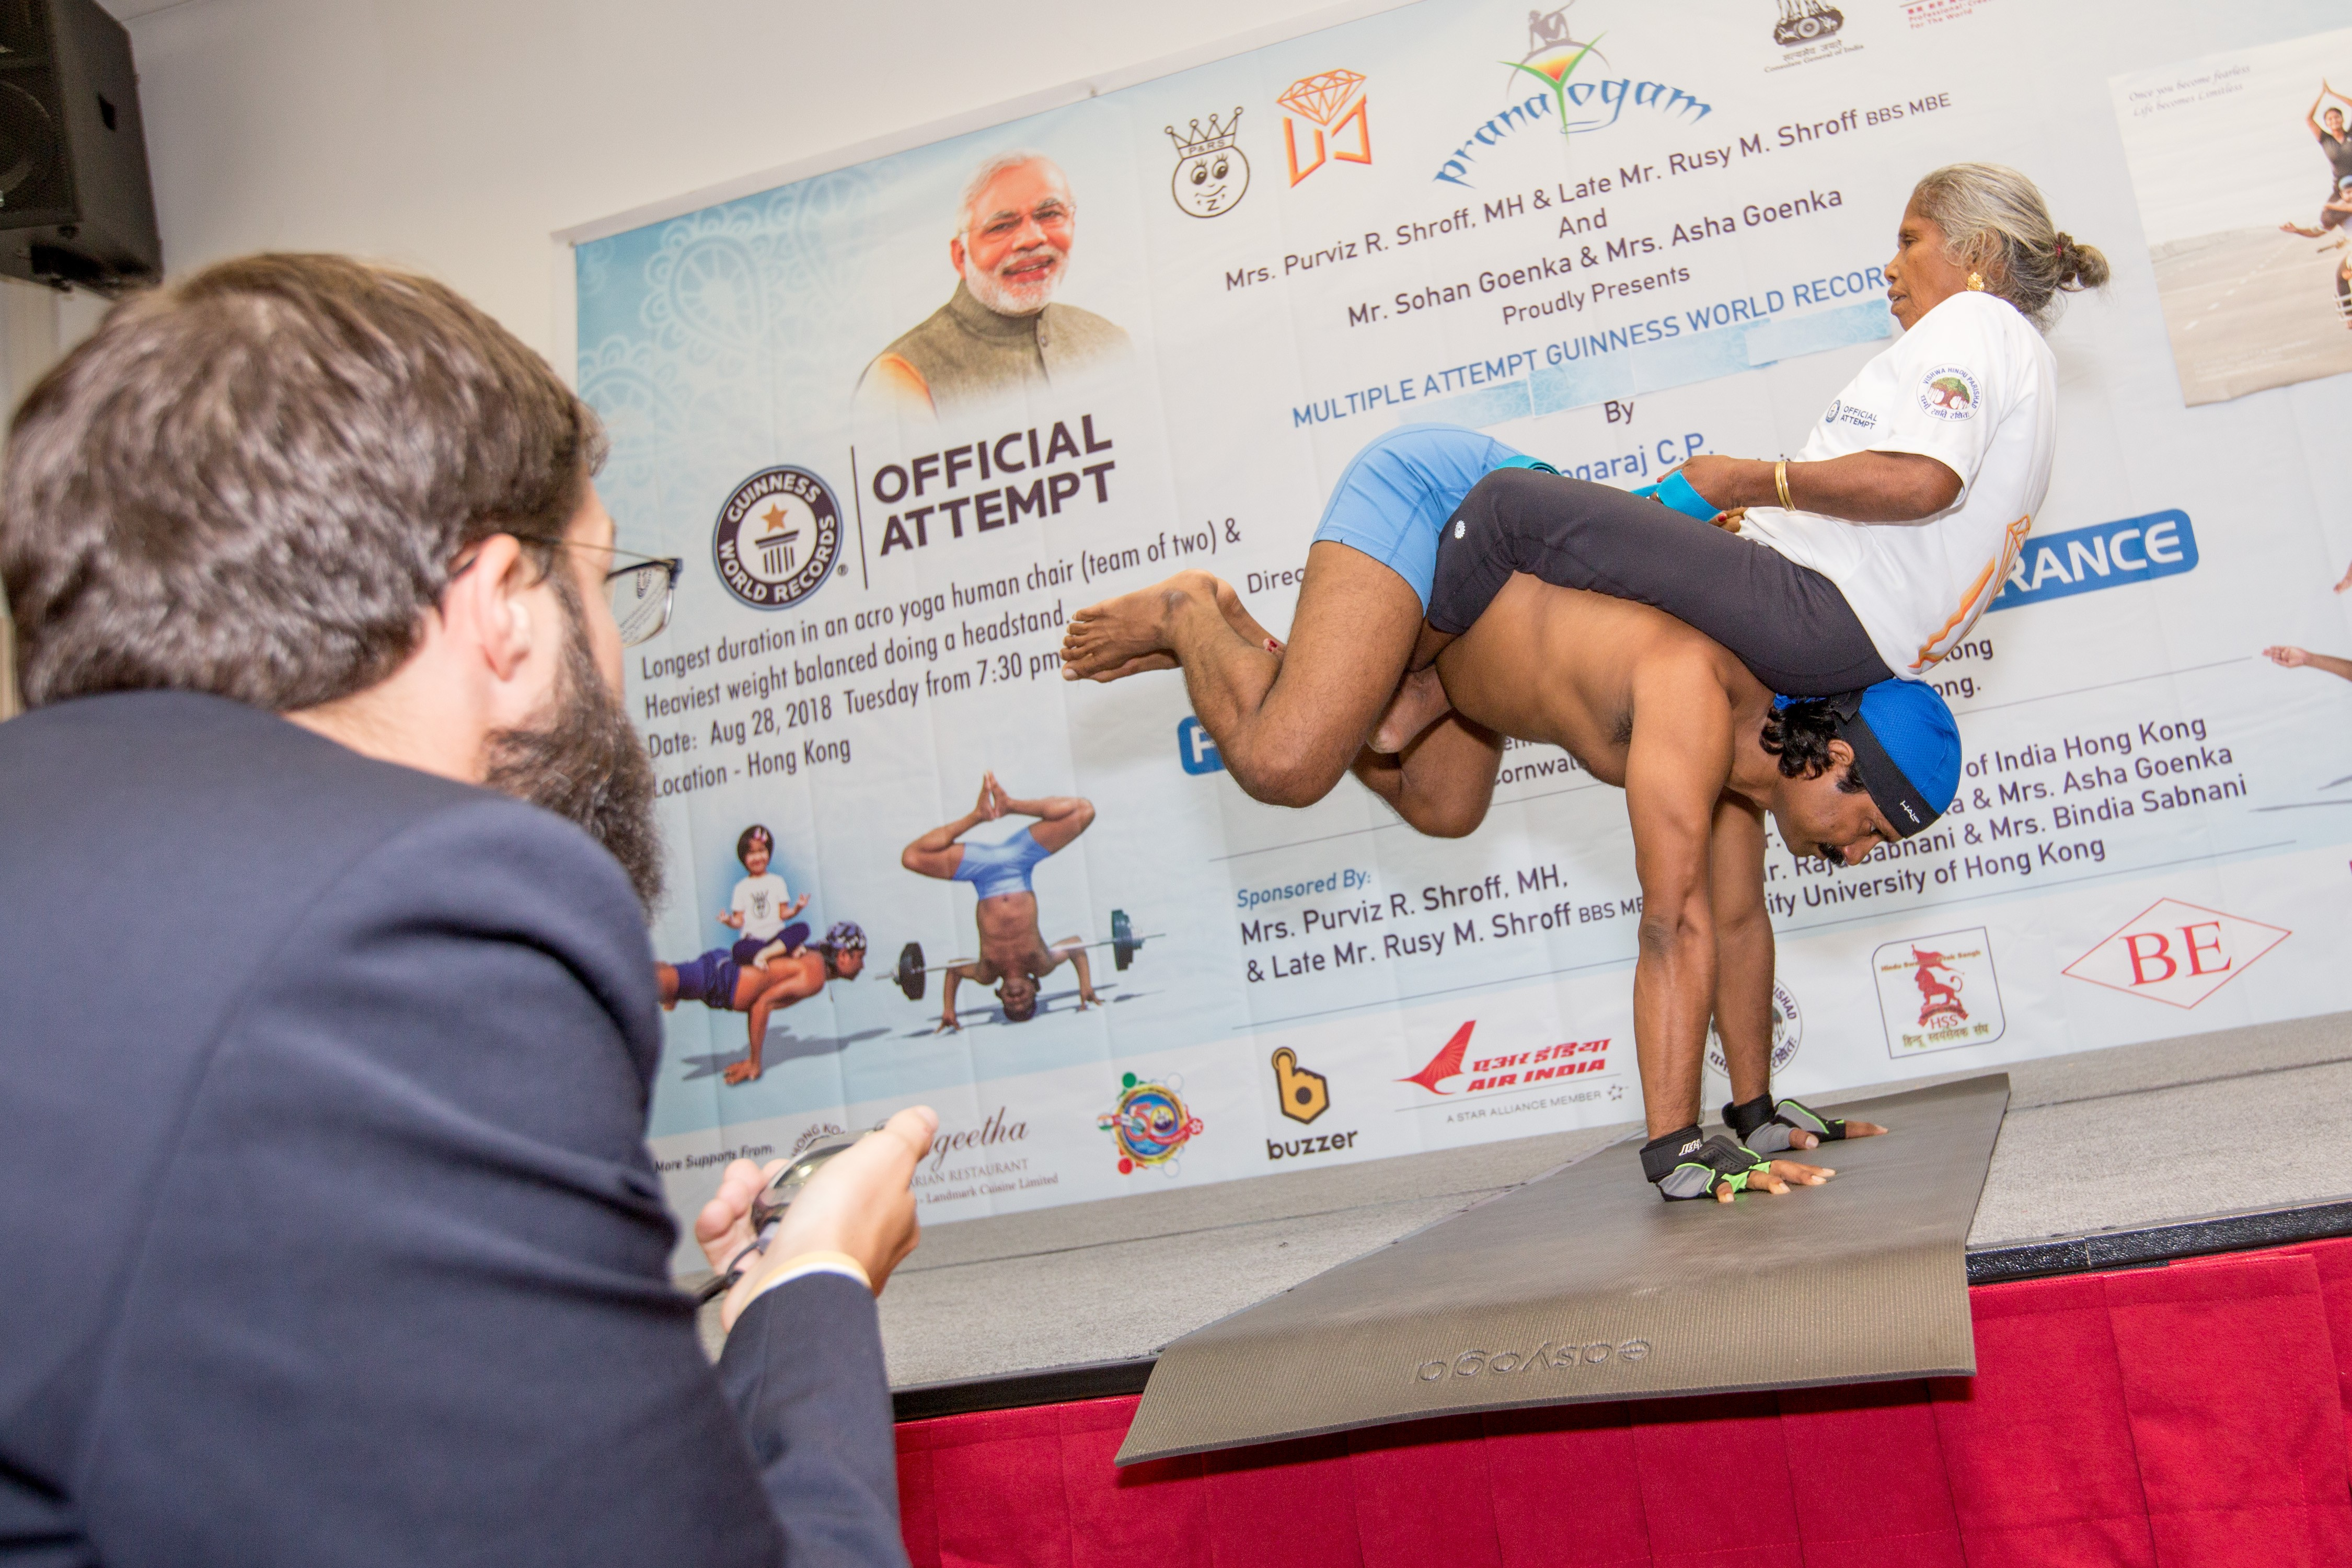 Hong Kong yogi breaks Guinness World Records for headstand and human